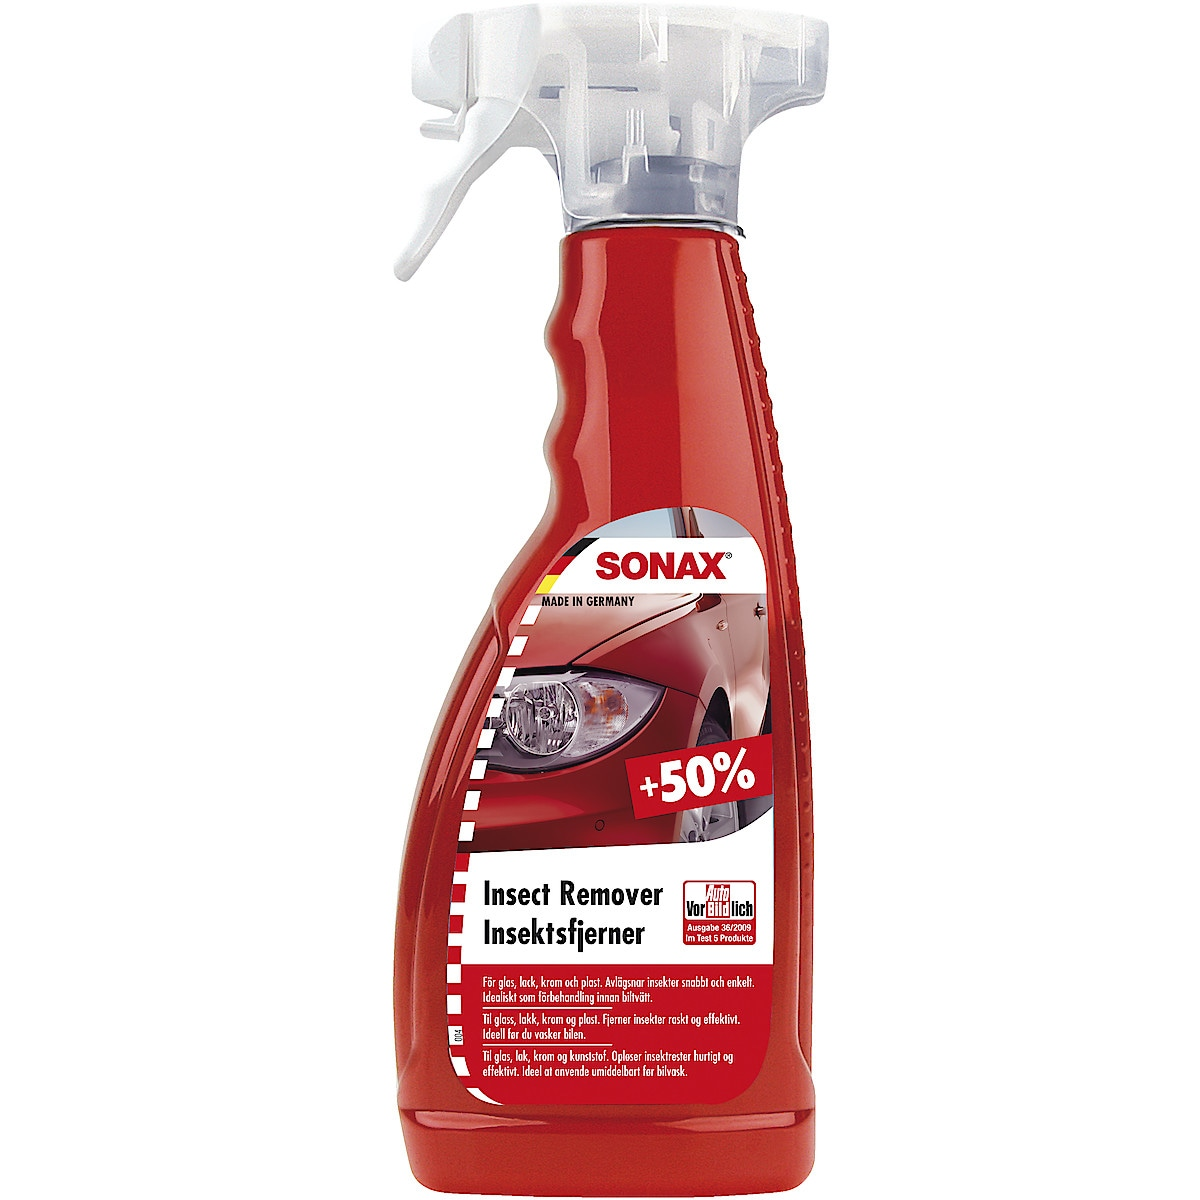 Sonax Insect Remover insektsfjerner